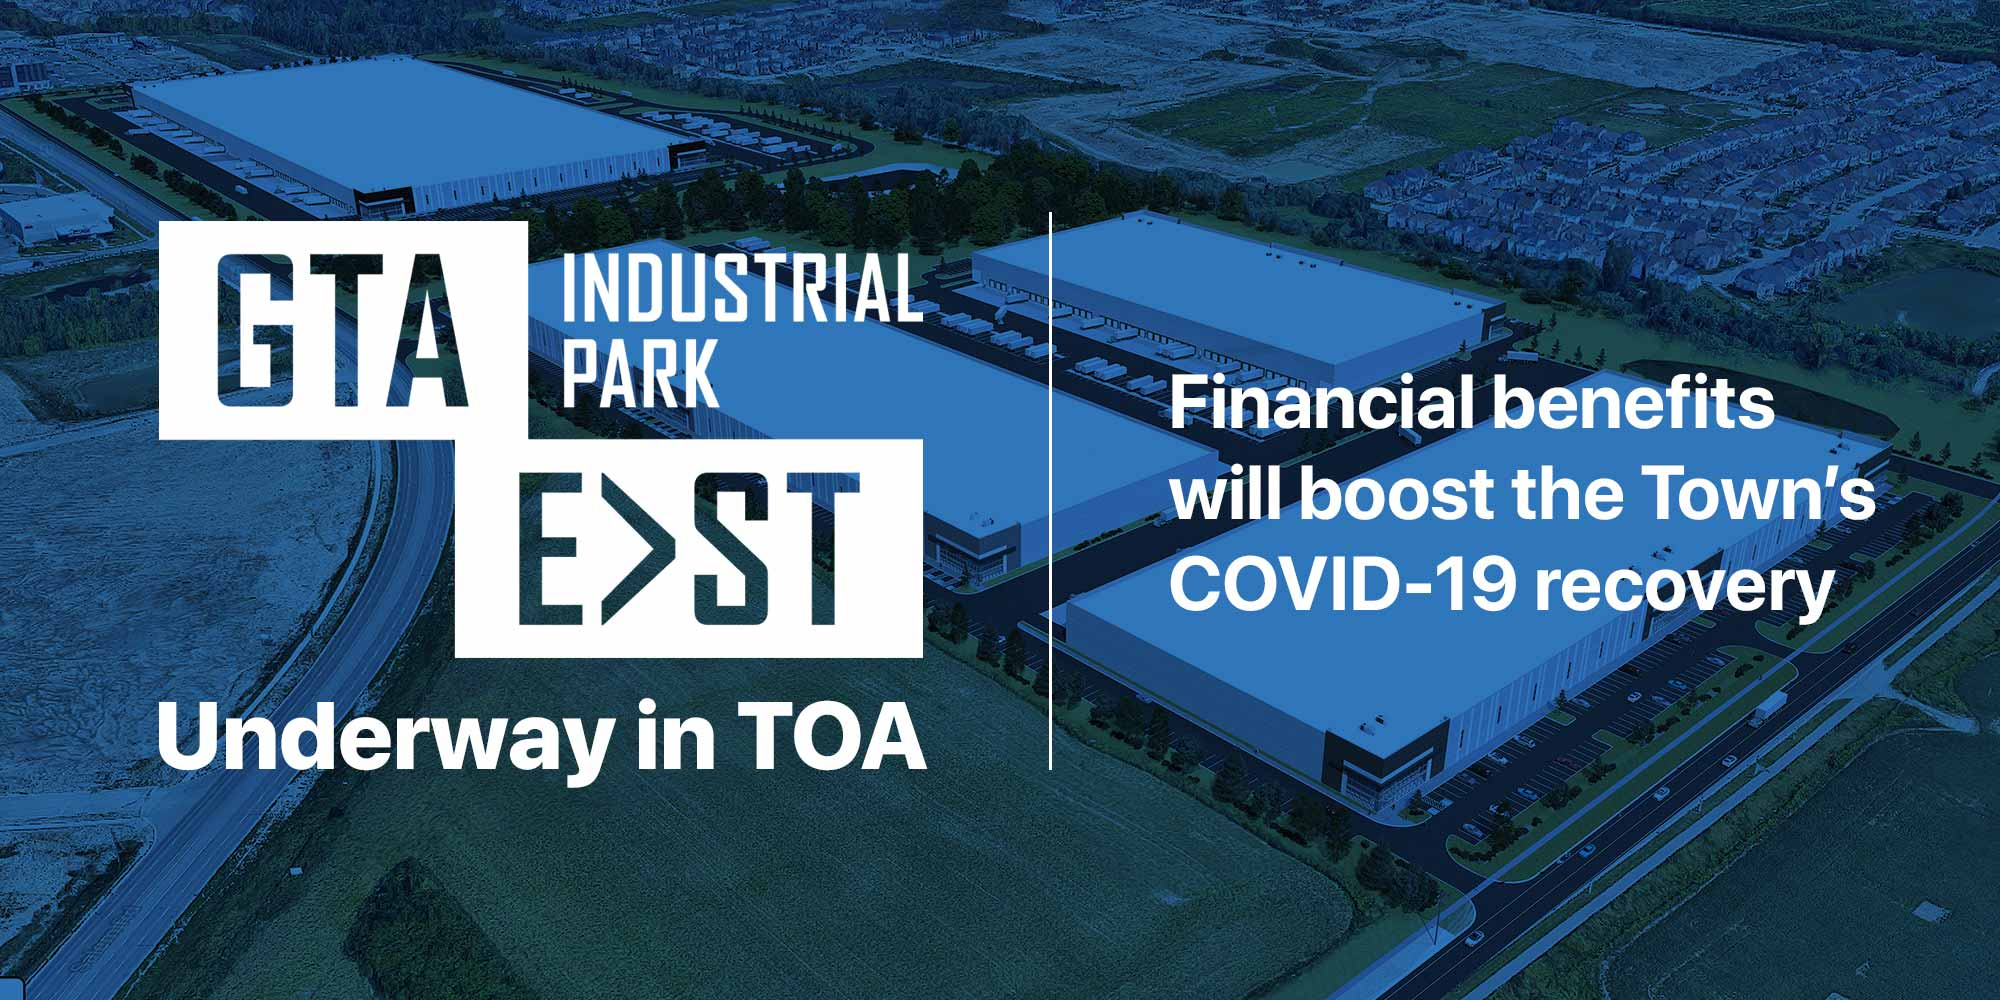 GTA East Industrial Park underway in TOA - Financial benefits will boost the Town's COVID-19 recovery